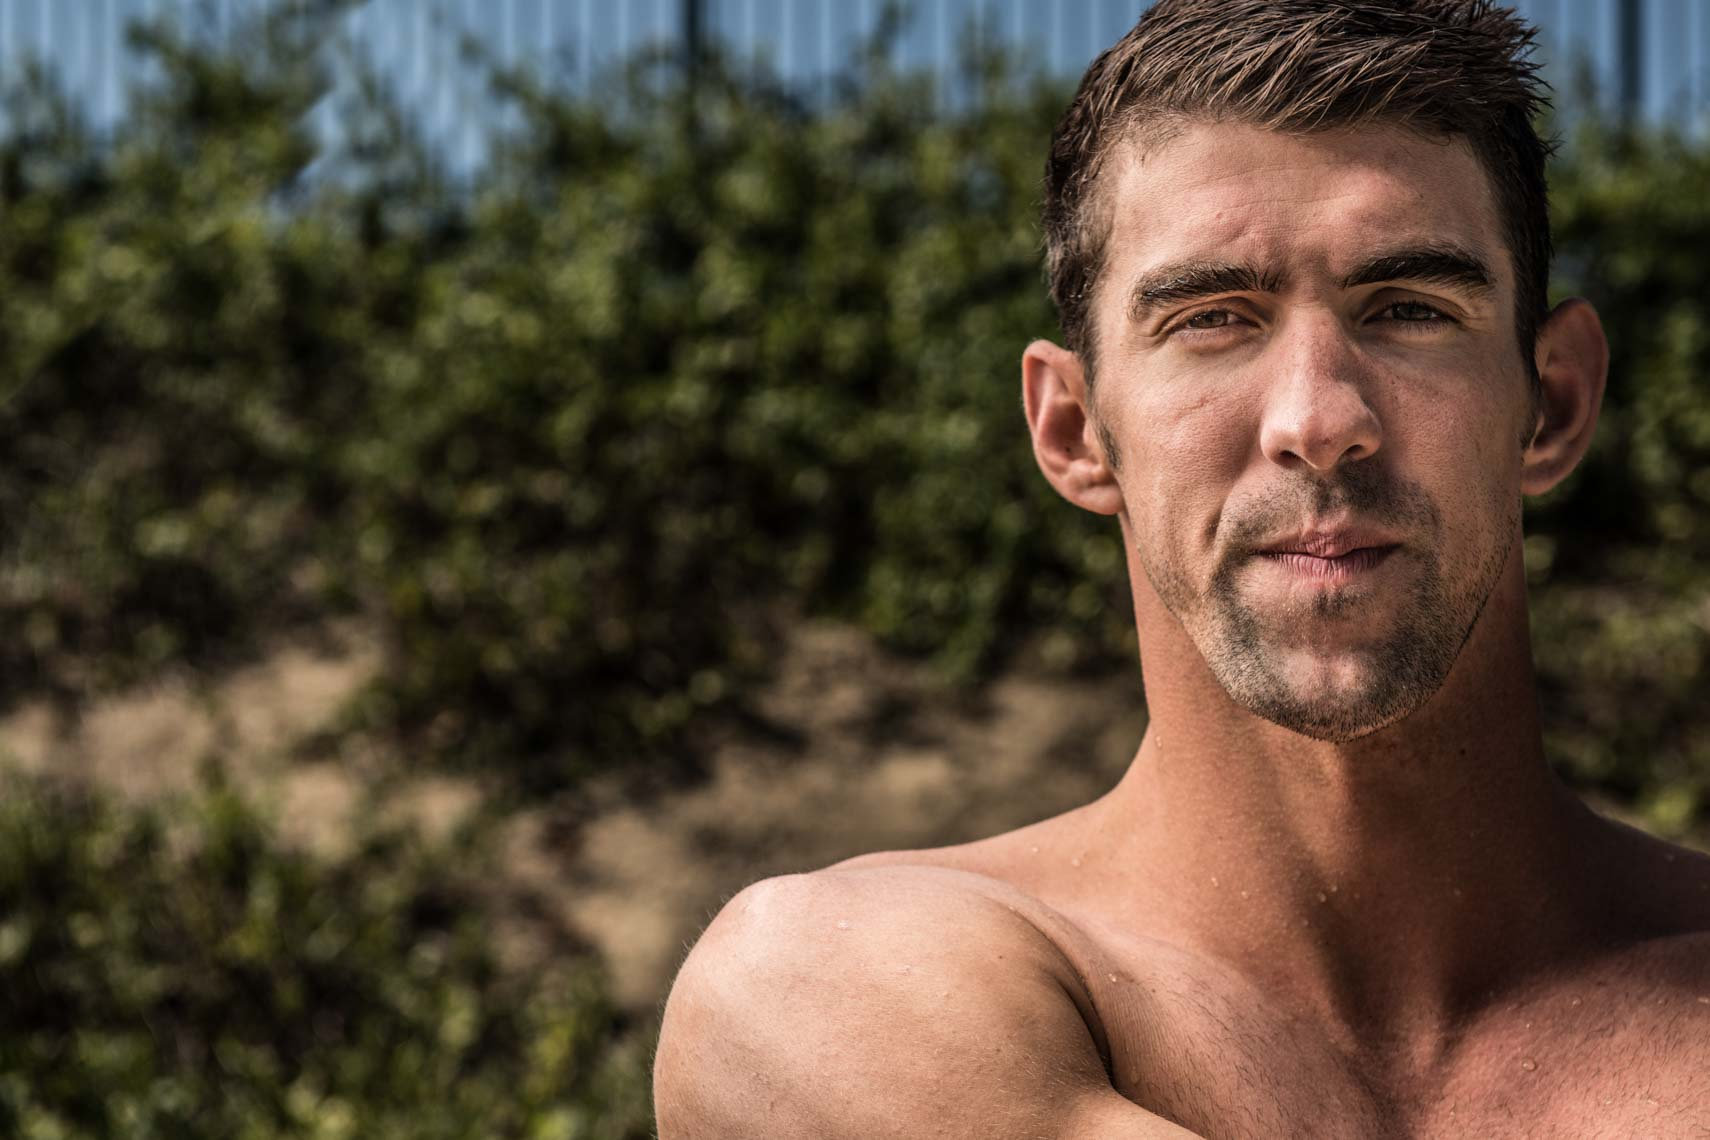 Michael Phelps Portrait by Mike Lewis